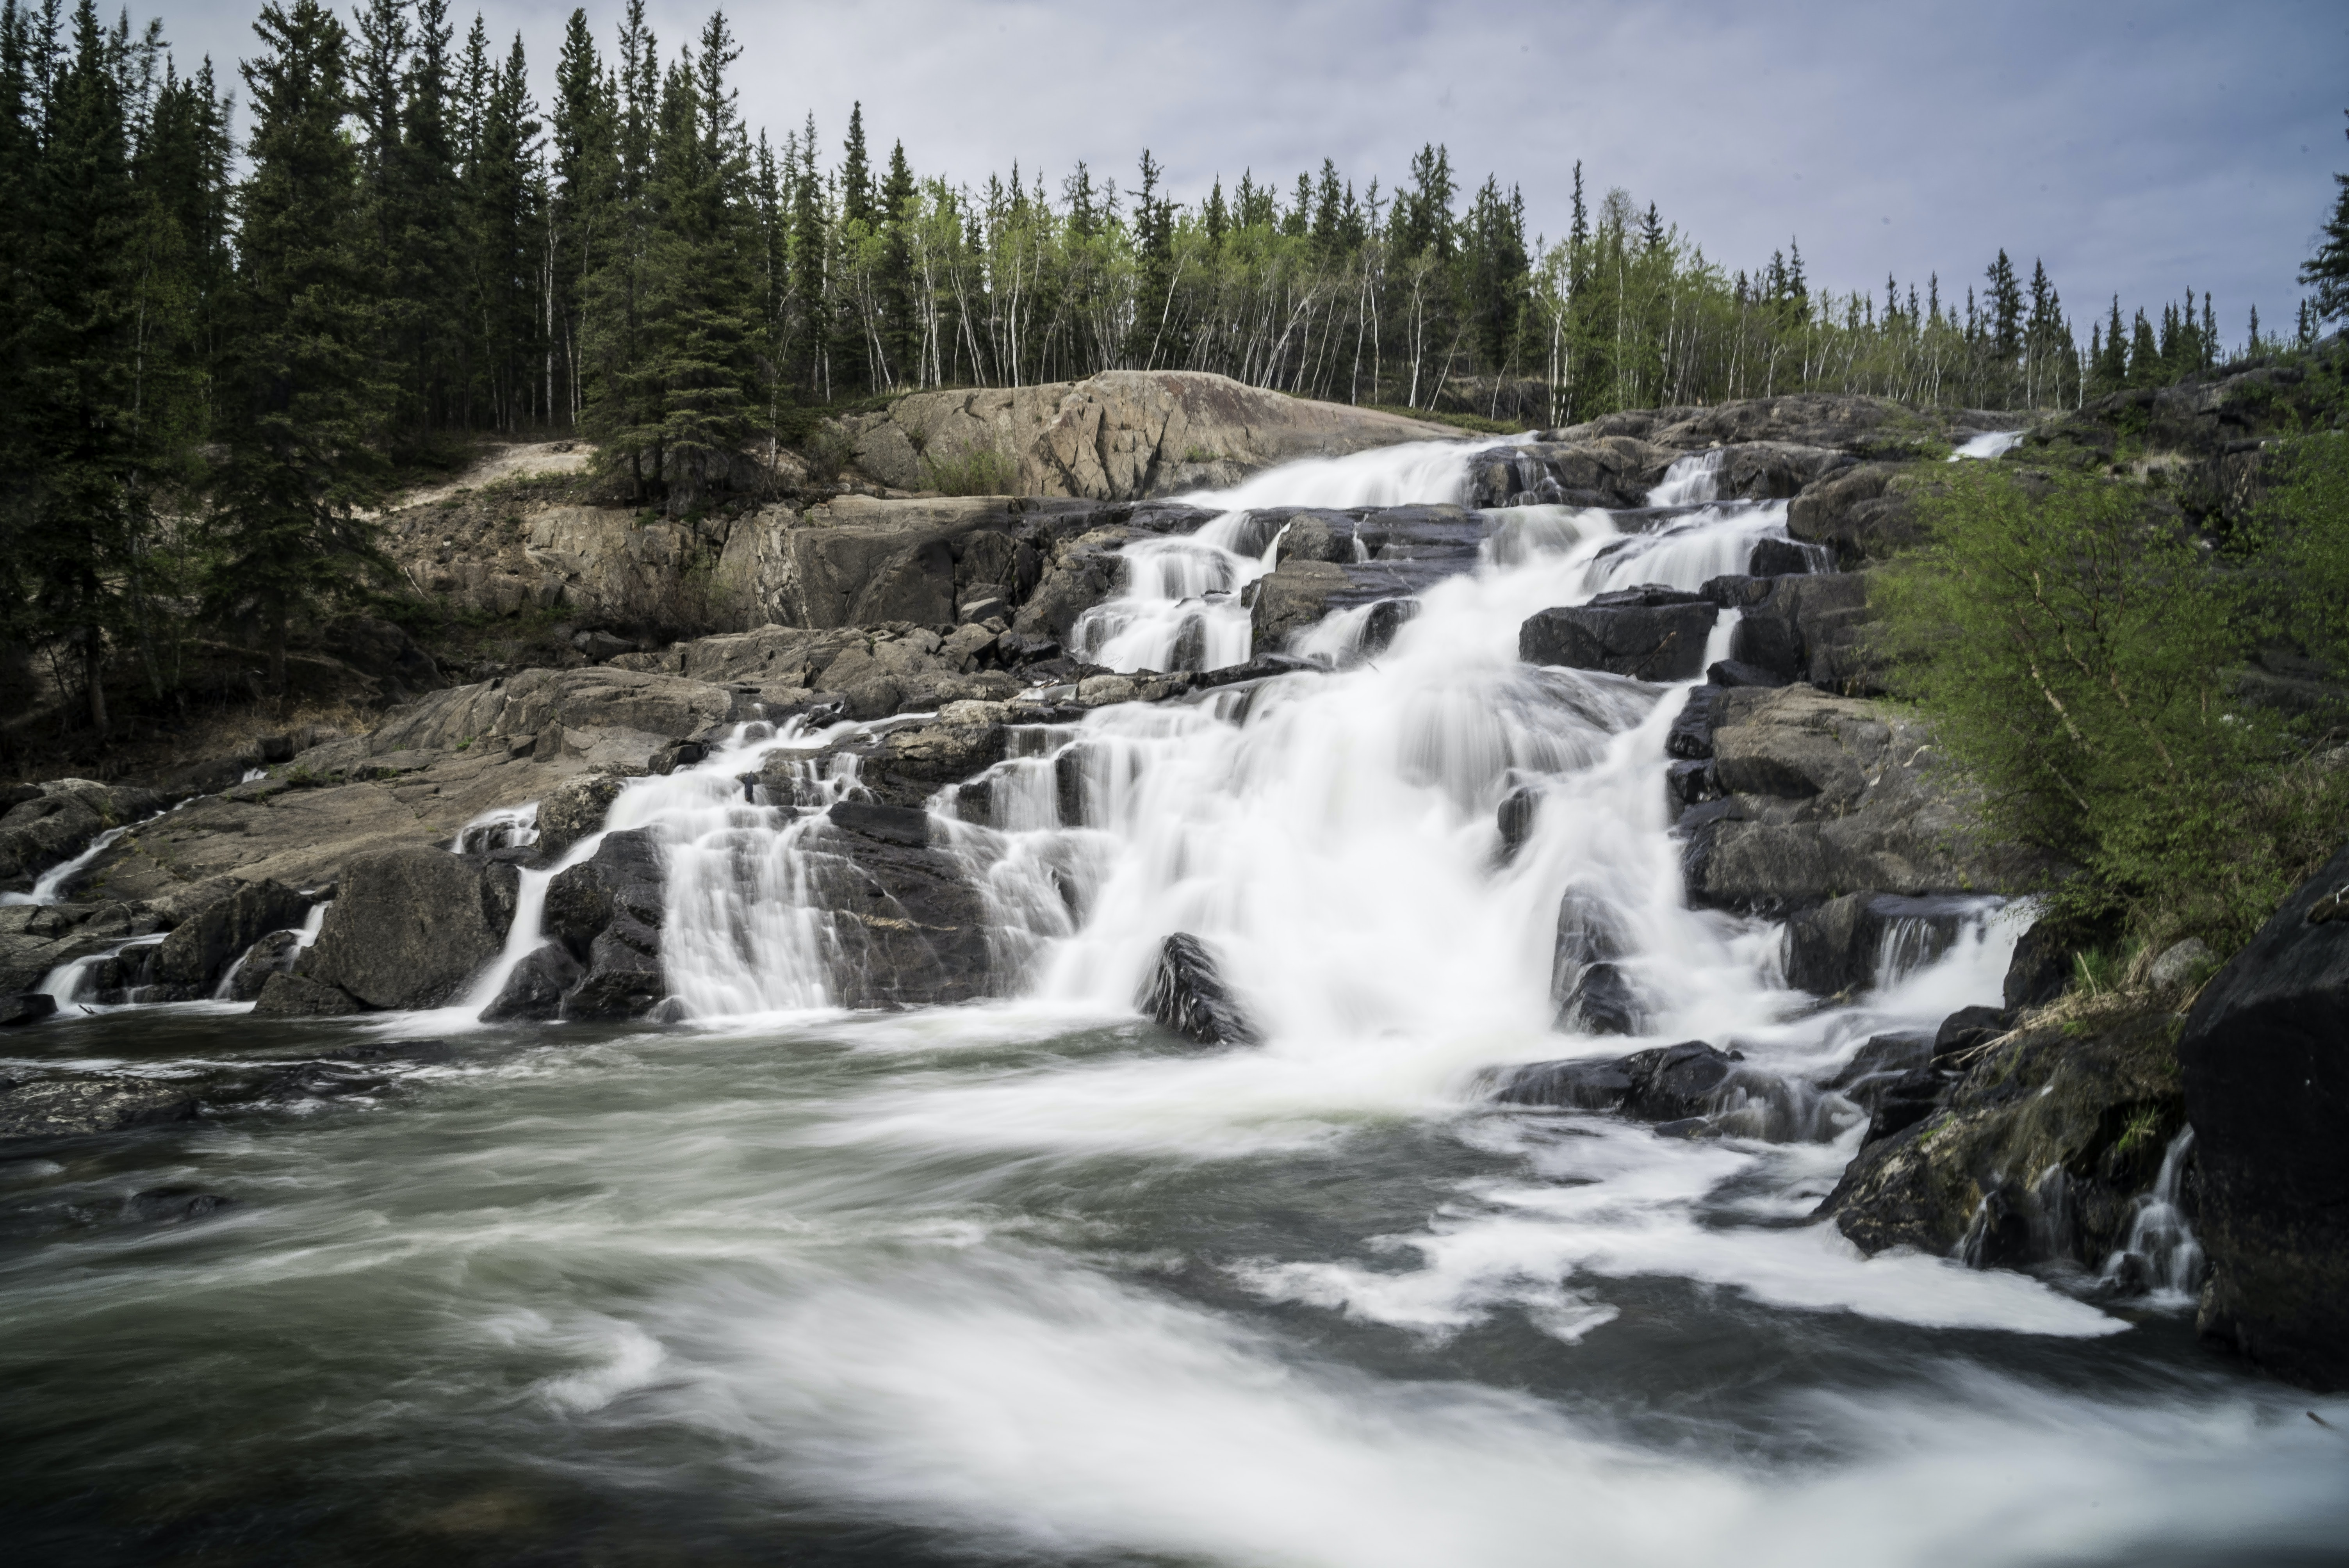 time lapse photography of flowing multi-step waterfall